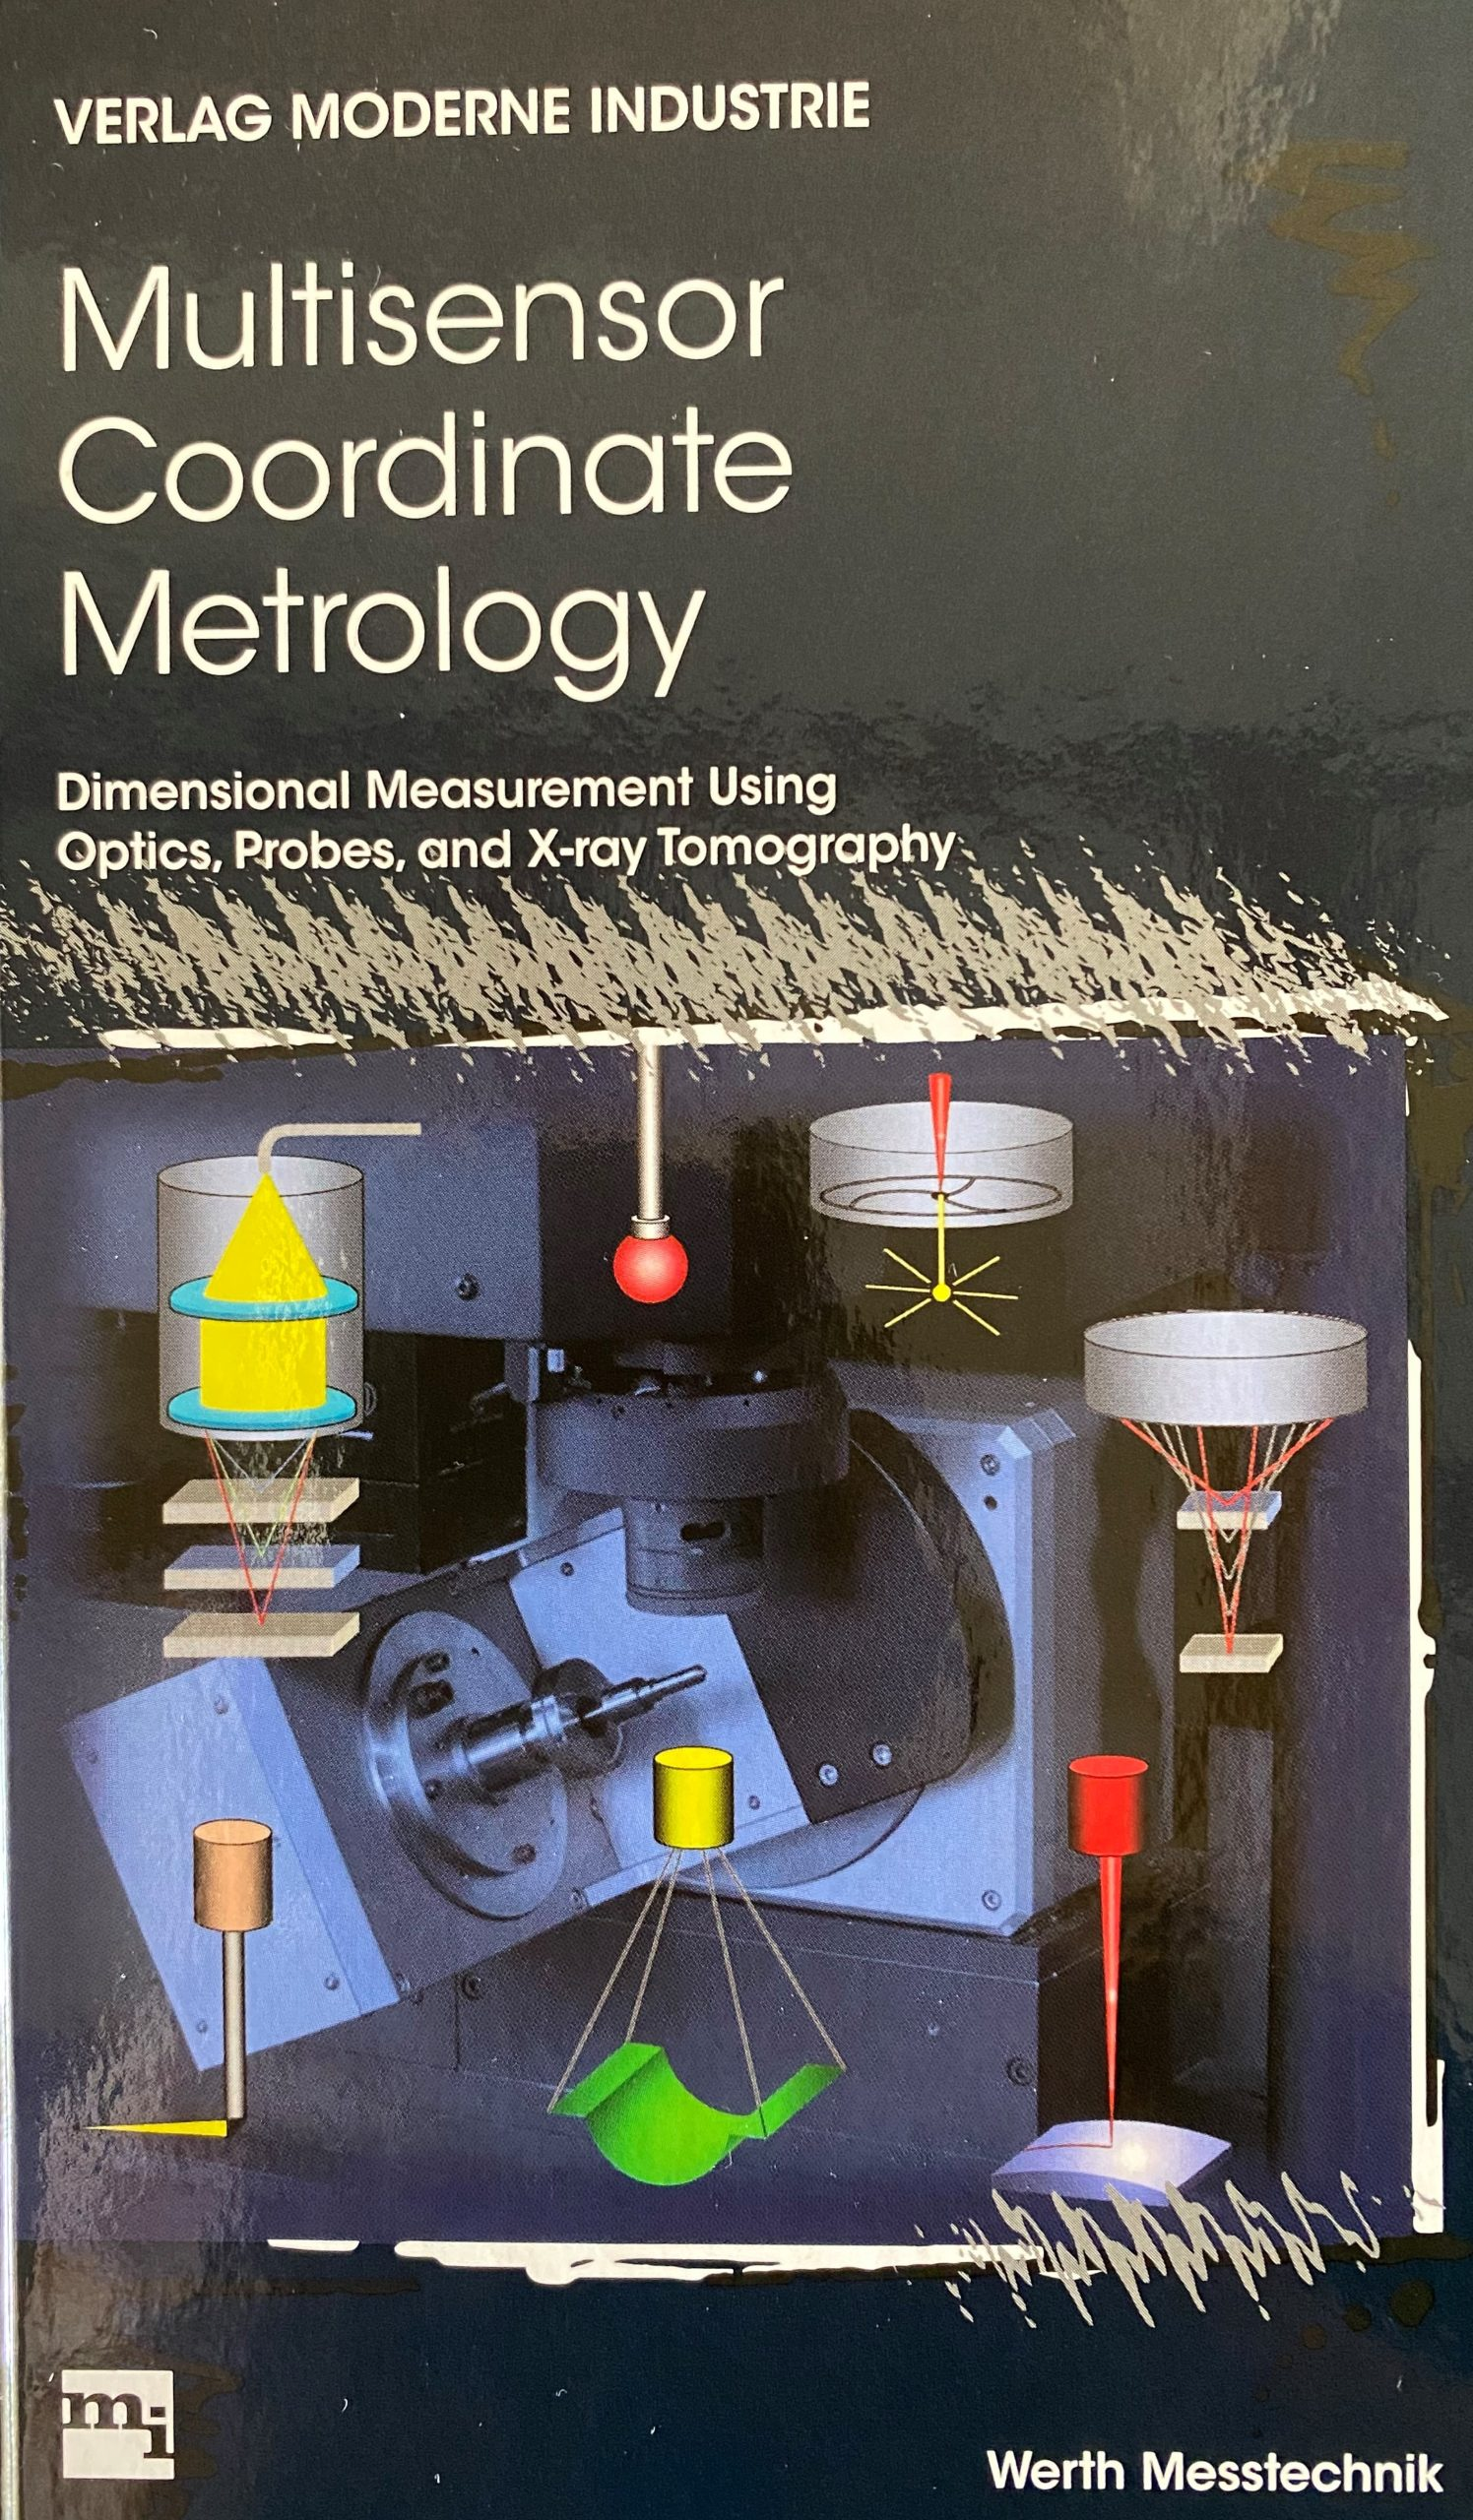 Multisensor Coordinate Metrology